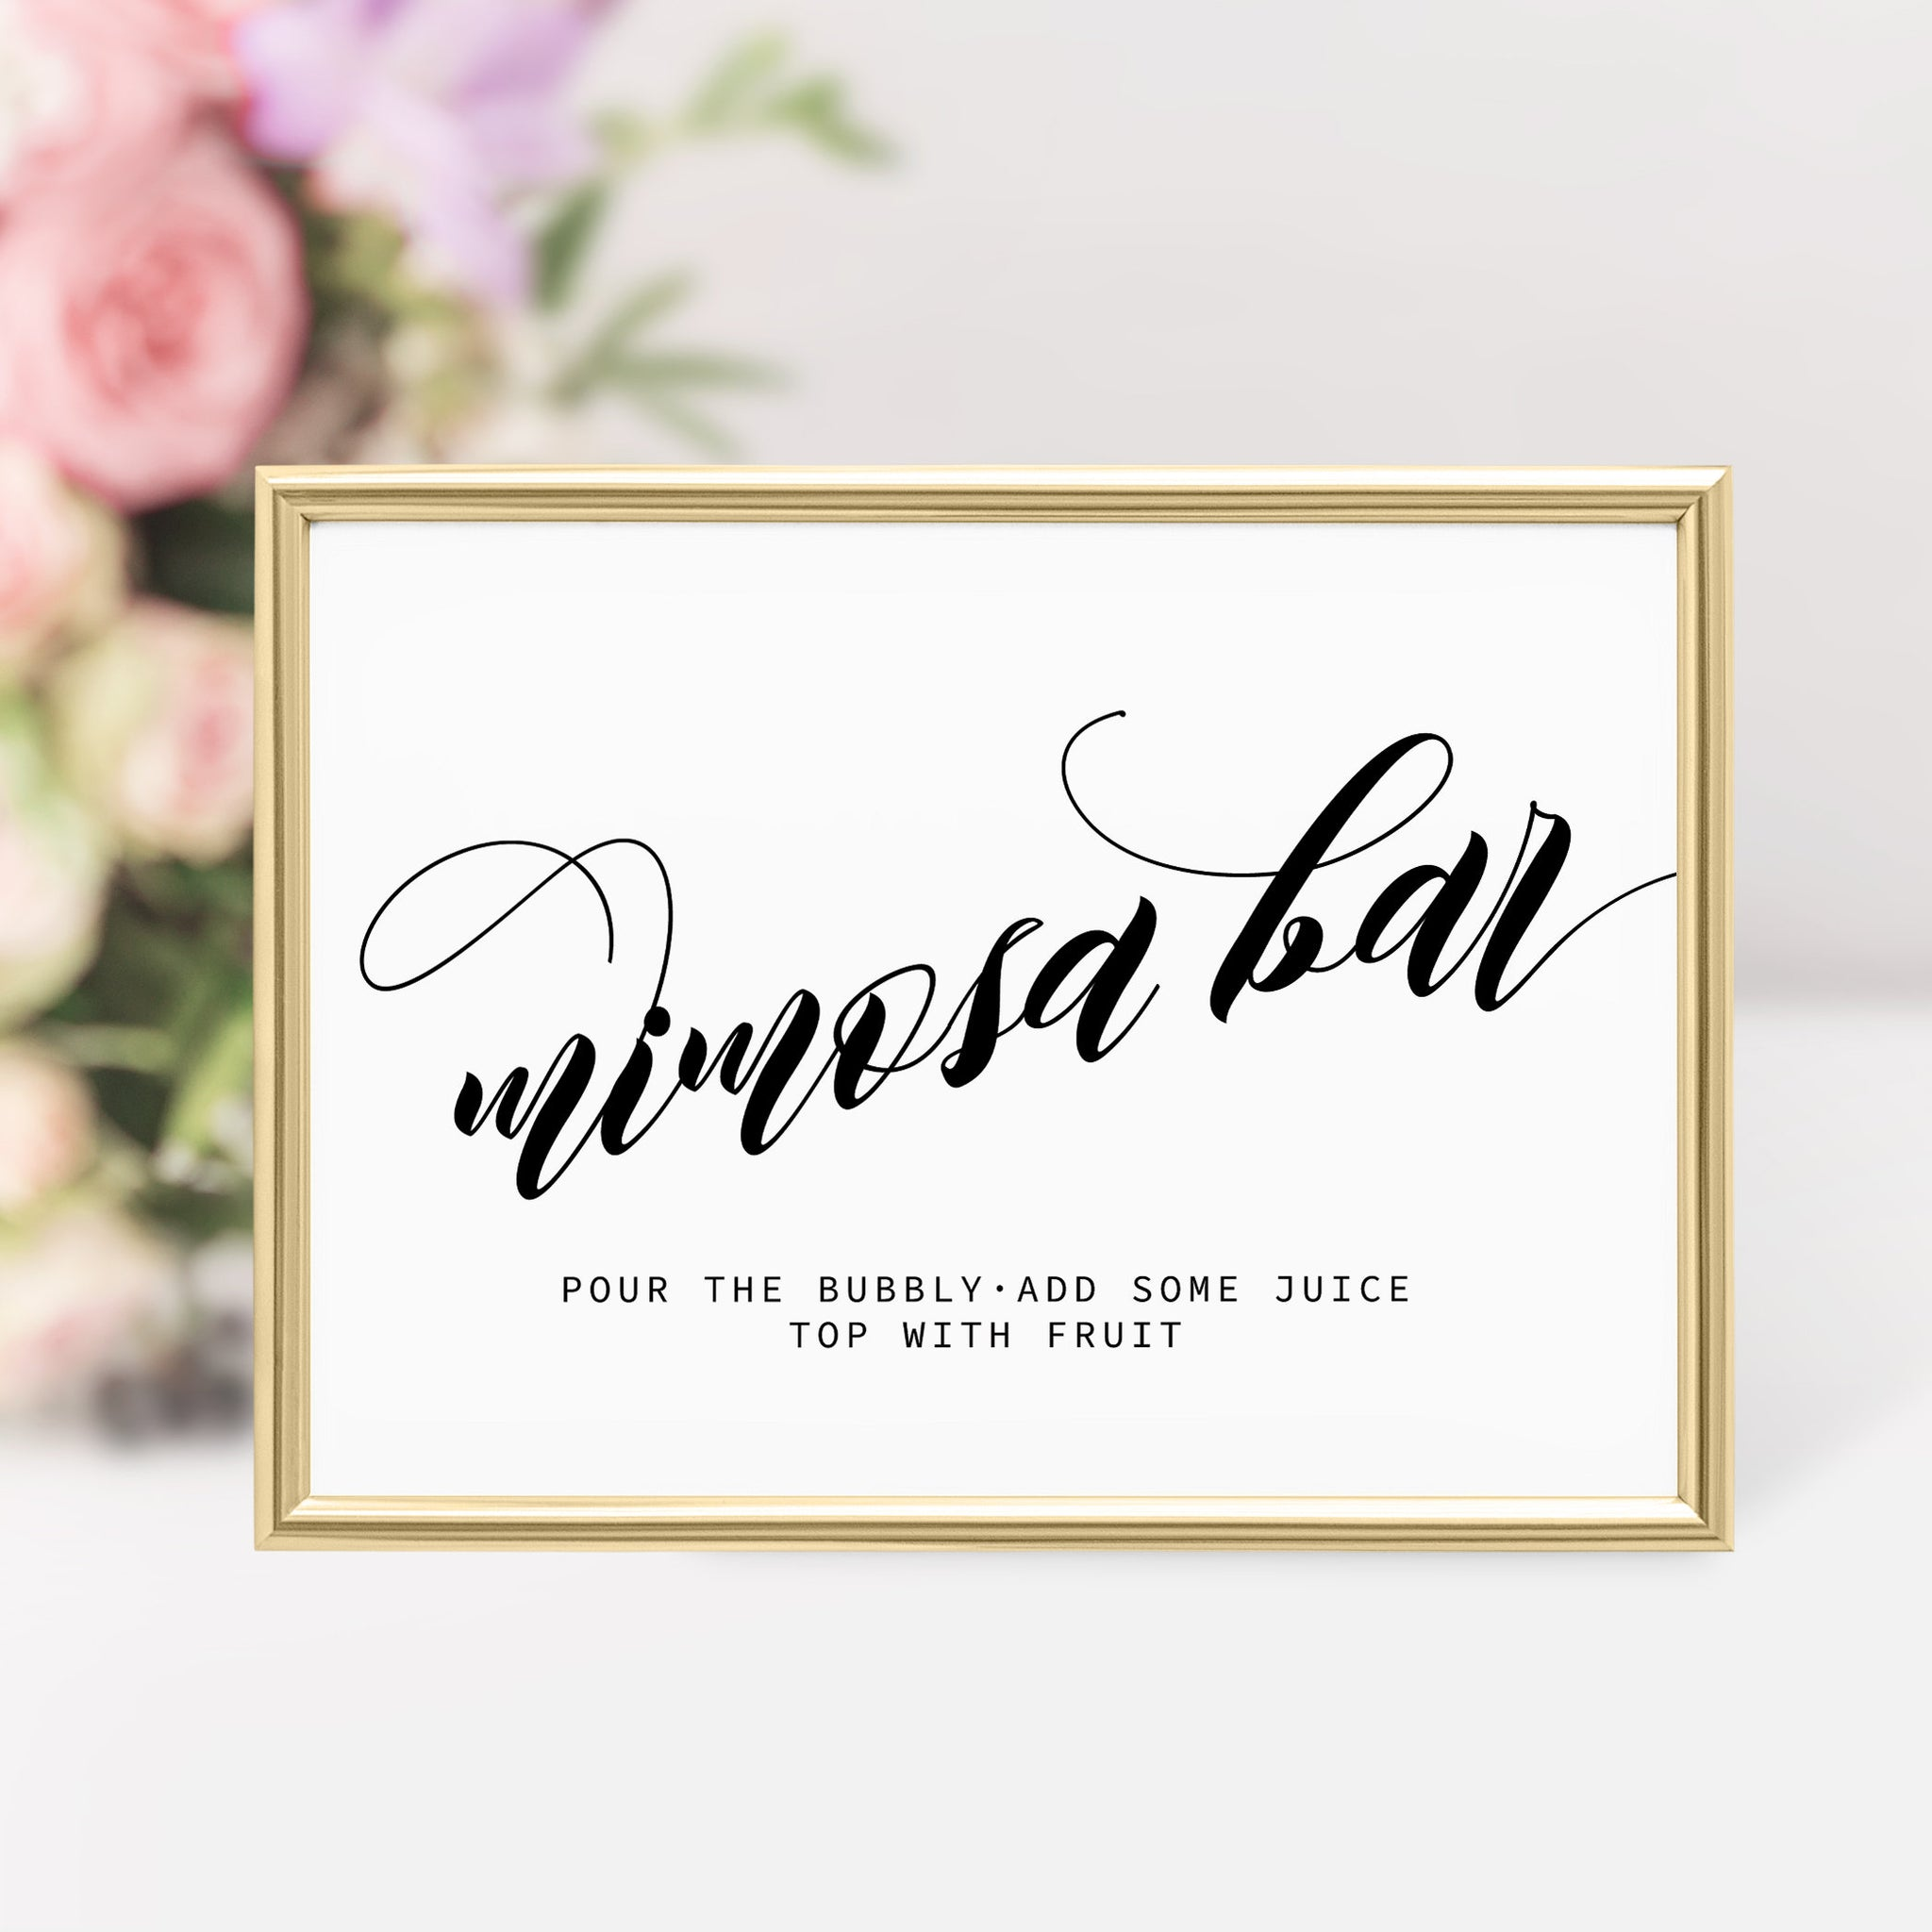 Mimosa Bar Sign, Bridal Shower Mimosa Bar Printable, Bubbly Bar Sign, Bridal Shower Decorations, DIGITAL DOWNLOAD - SFB100 - @PlumPolkaDot